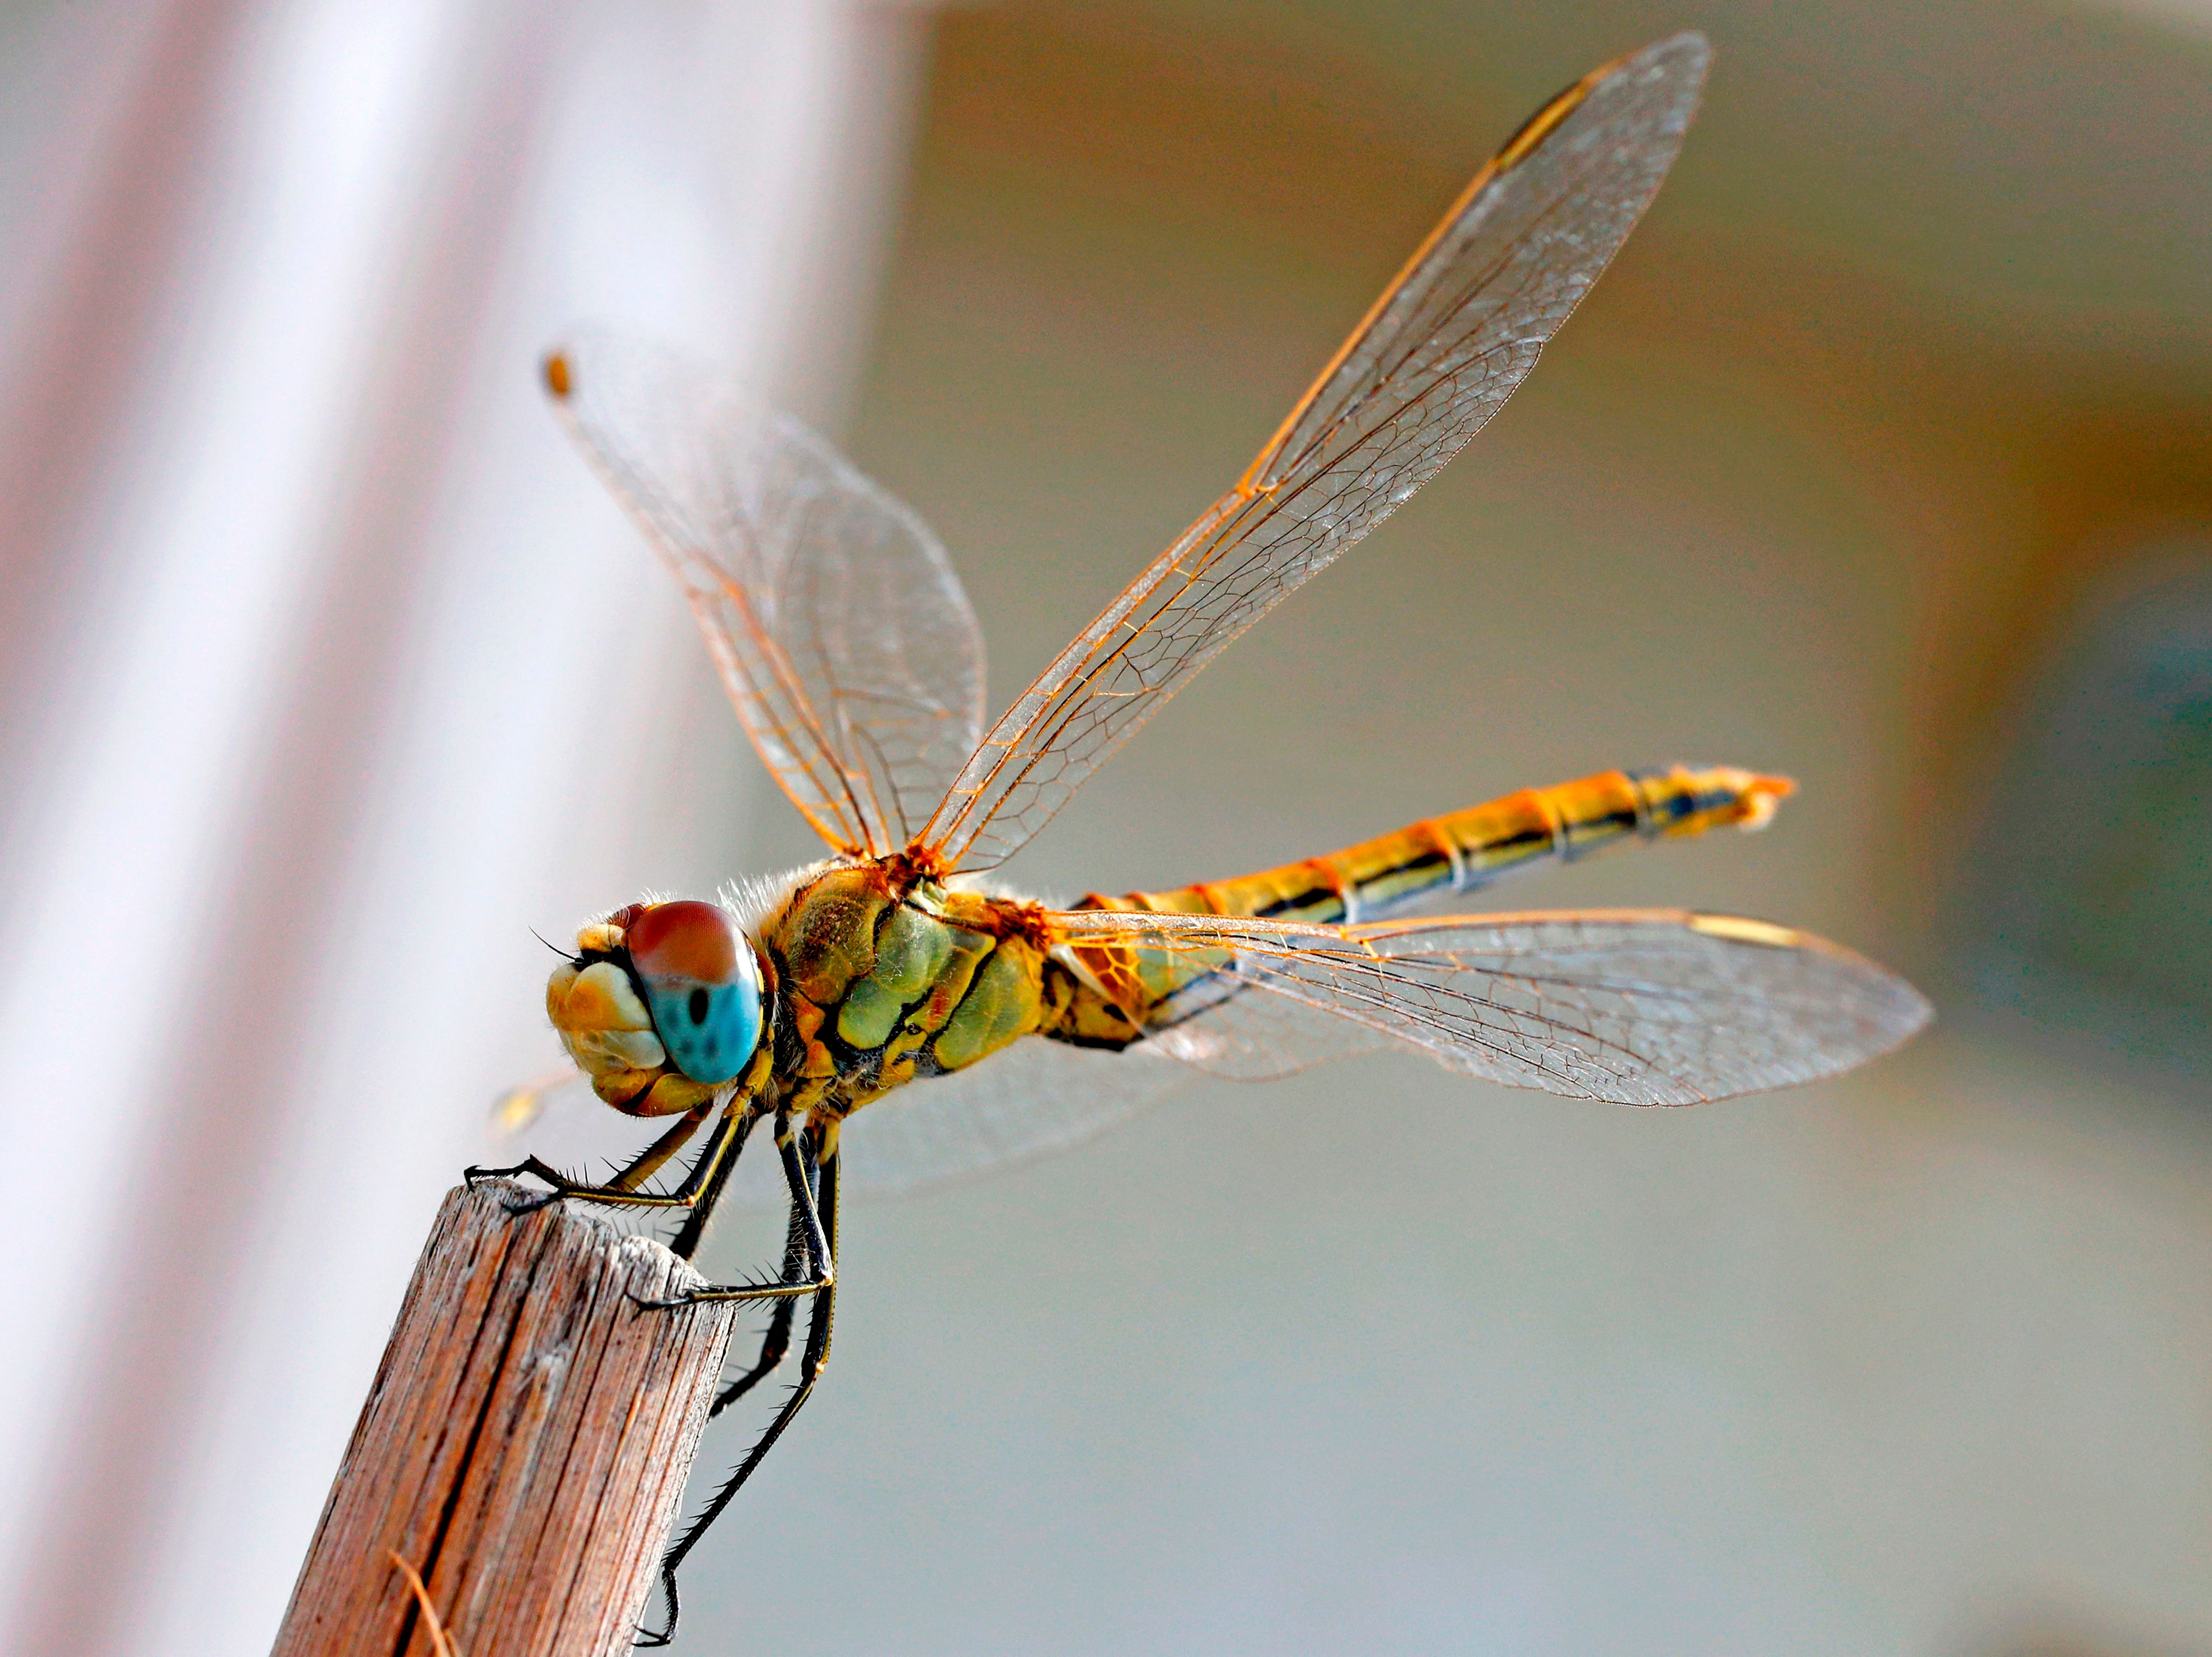 A Southern Darter dragonfly (Sympetrum Meridionale) is pictured on October 22, 2018 in the Israeli Mediterranean coastal city of Netanya.